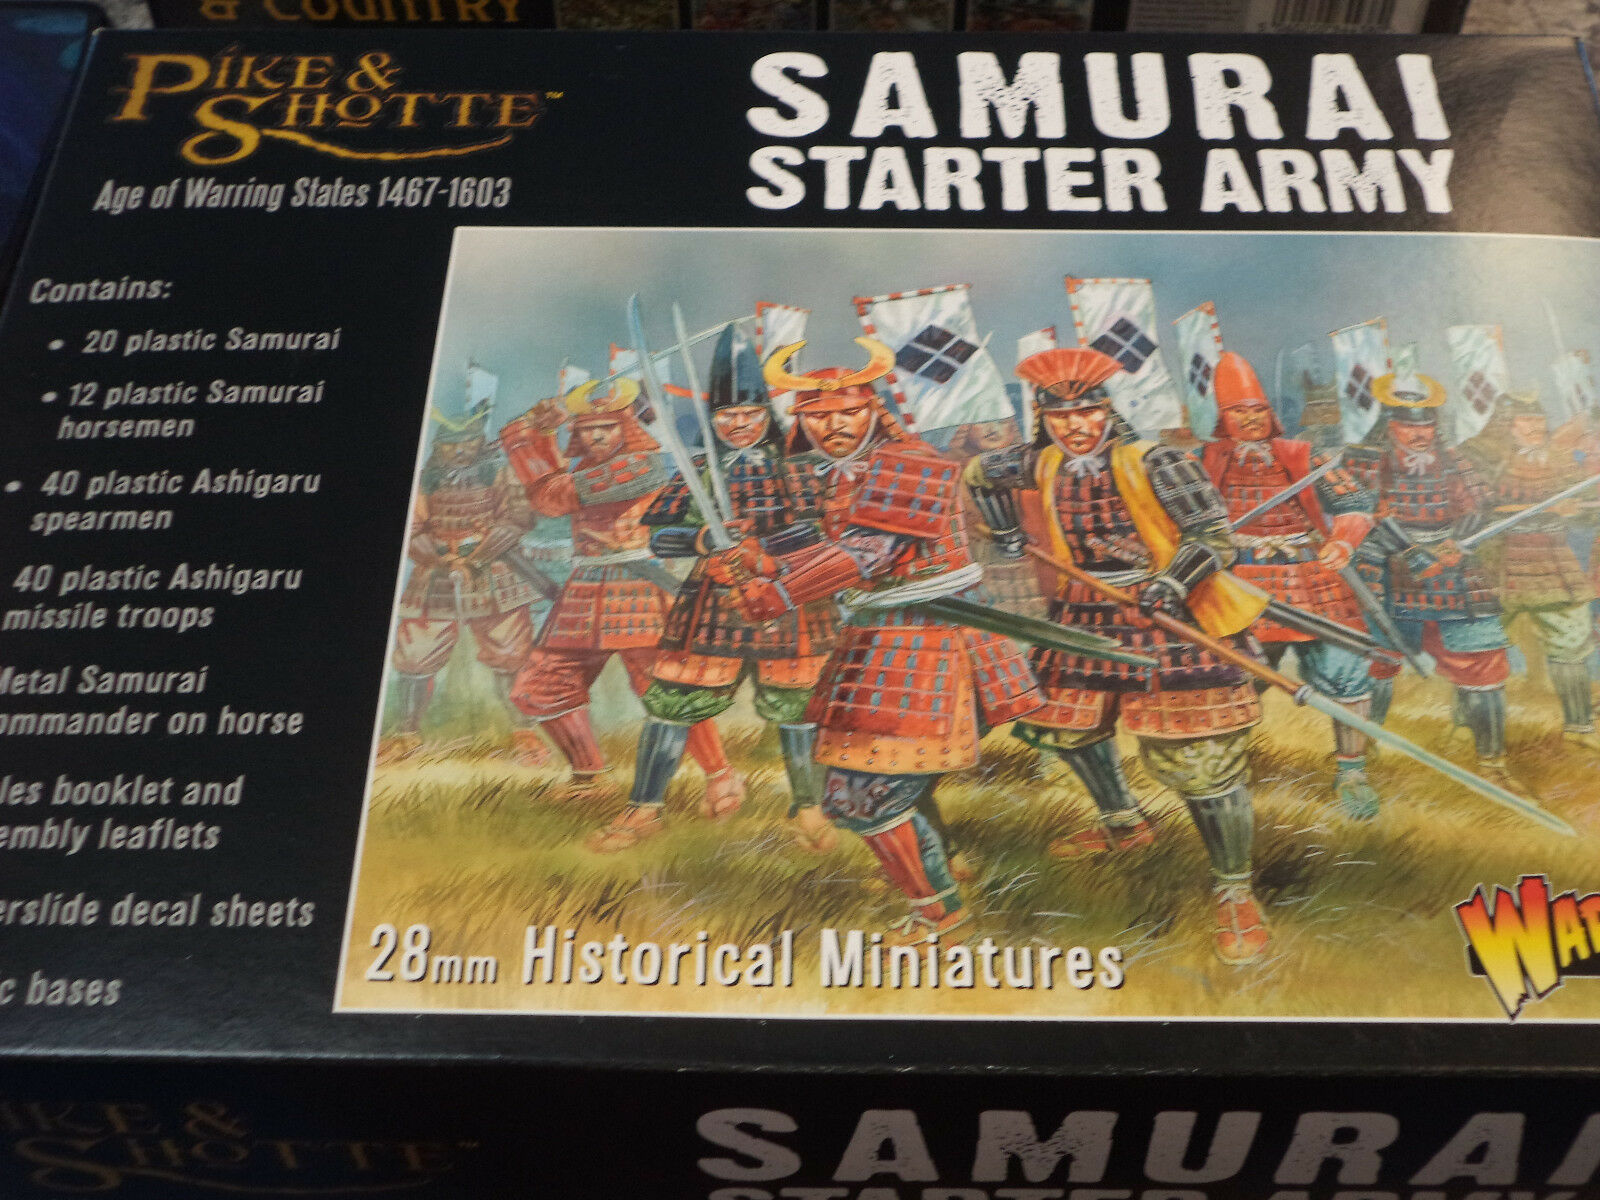 Samurai Starter Army Pike and  Shotte Set jeu de guerre Warlord Games NEUF  &  promotions passionnantes